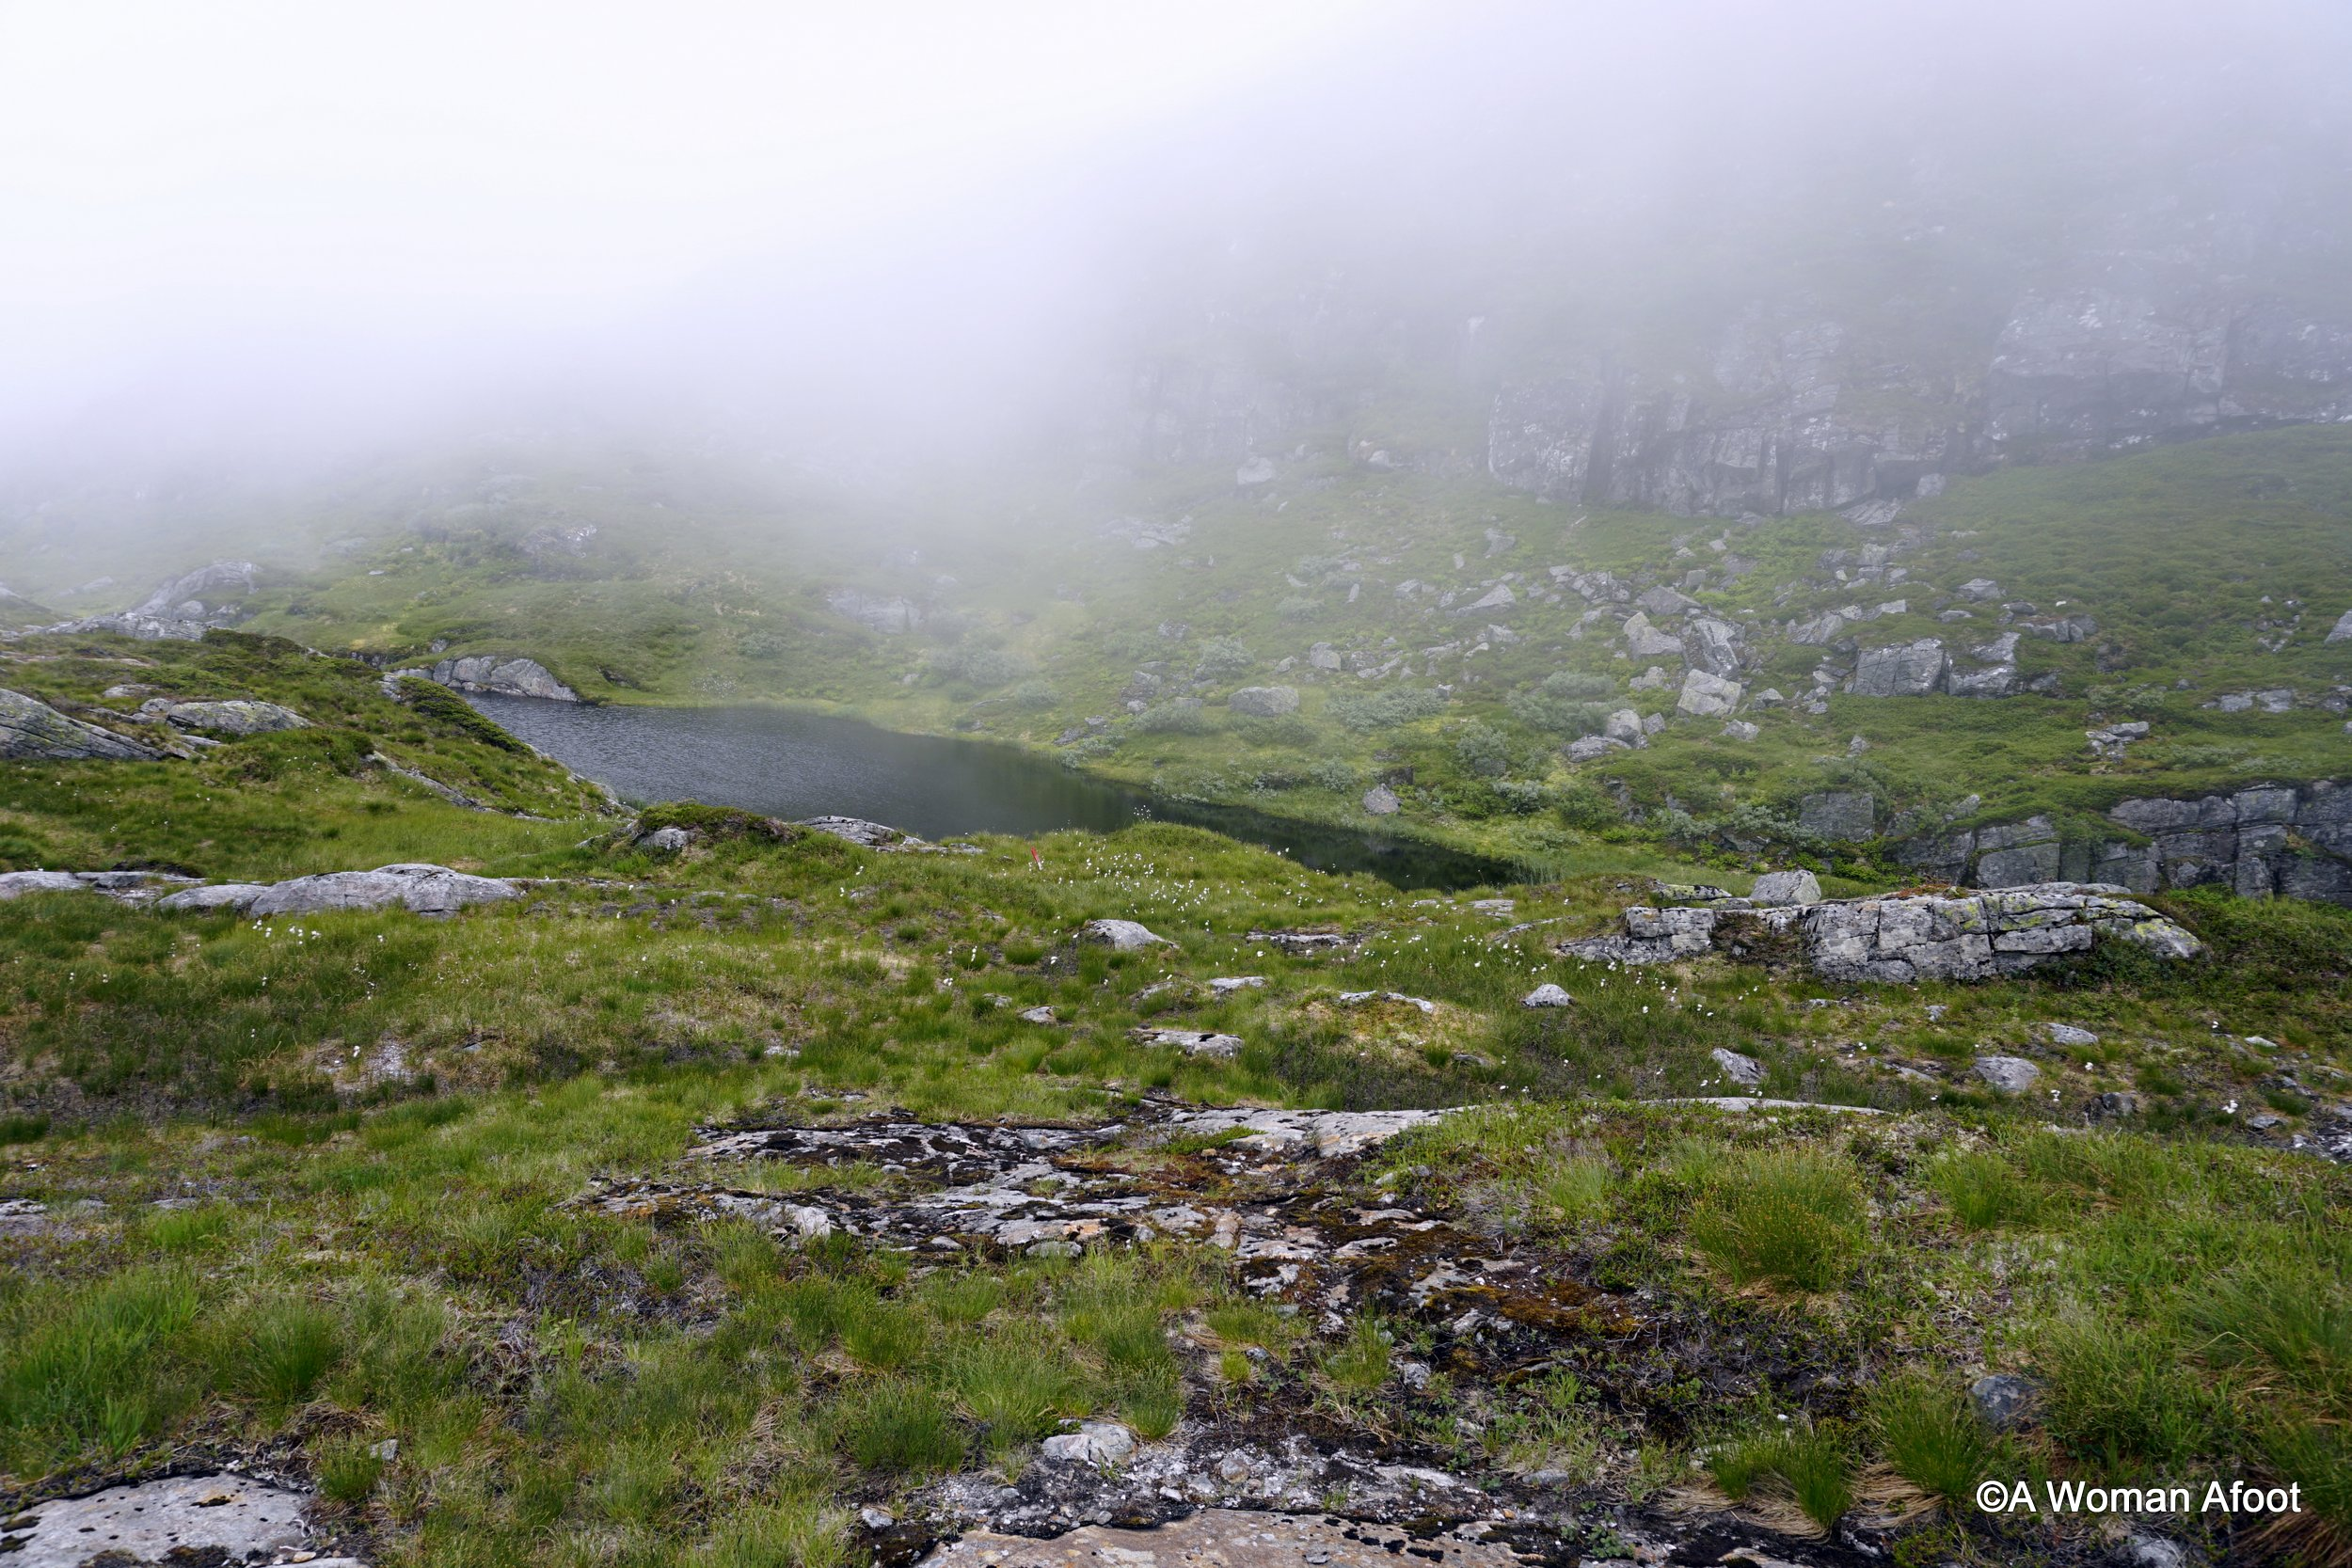 Looking for a solo hiking destination near Bergen? Check out this beautiful trail from Dale to Høgabu. 18 km through stunning mountains - learn more at awomanafoot.com | Hiking solo in Norway | Wild Camping Solo in Norway | Trail report | Women solo hikers | Scandinavia | Where to hike in Europe | #Bergen #hiking #camping #solo #Norway #trail #Dale #Fjord